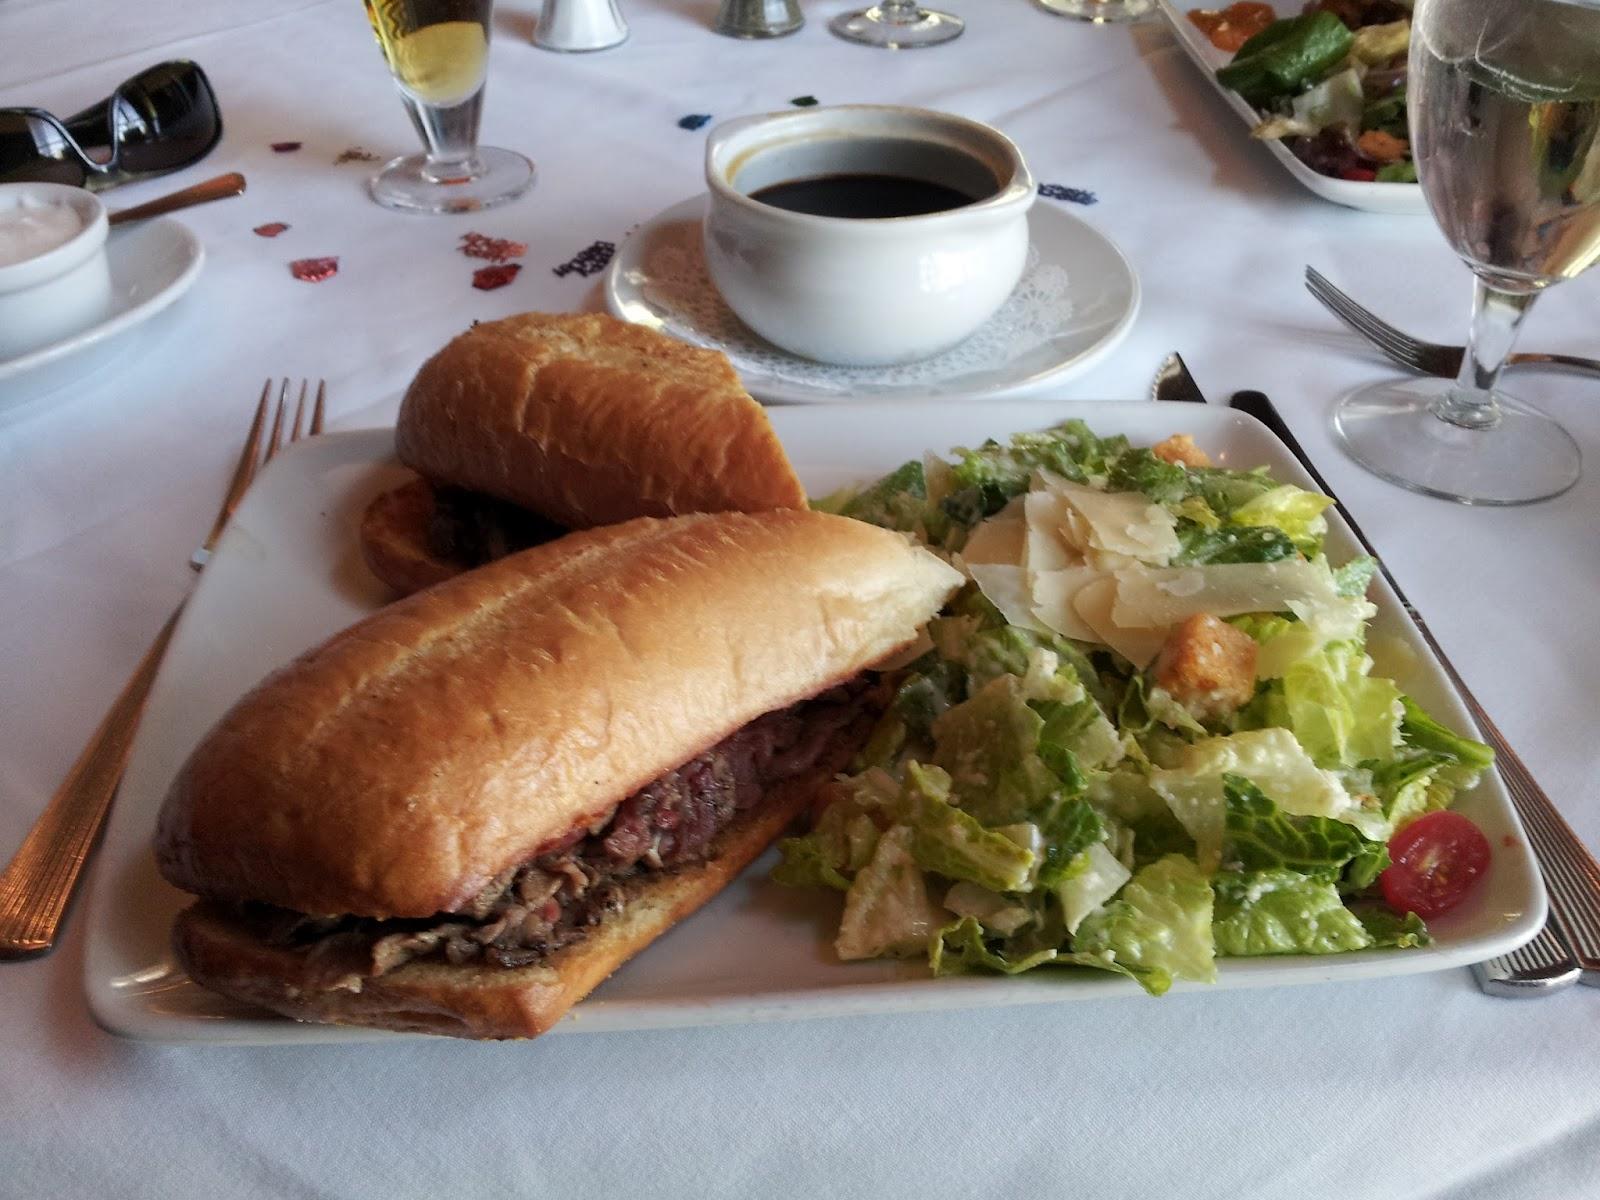 French Dip Reviews: 5 of 5 DeliciScore™ (From Heaven) Awarded to ...